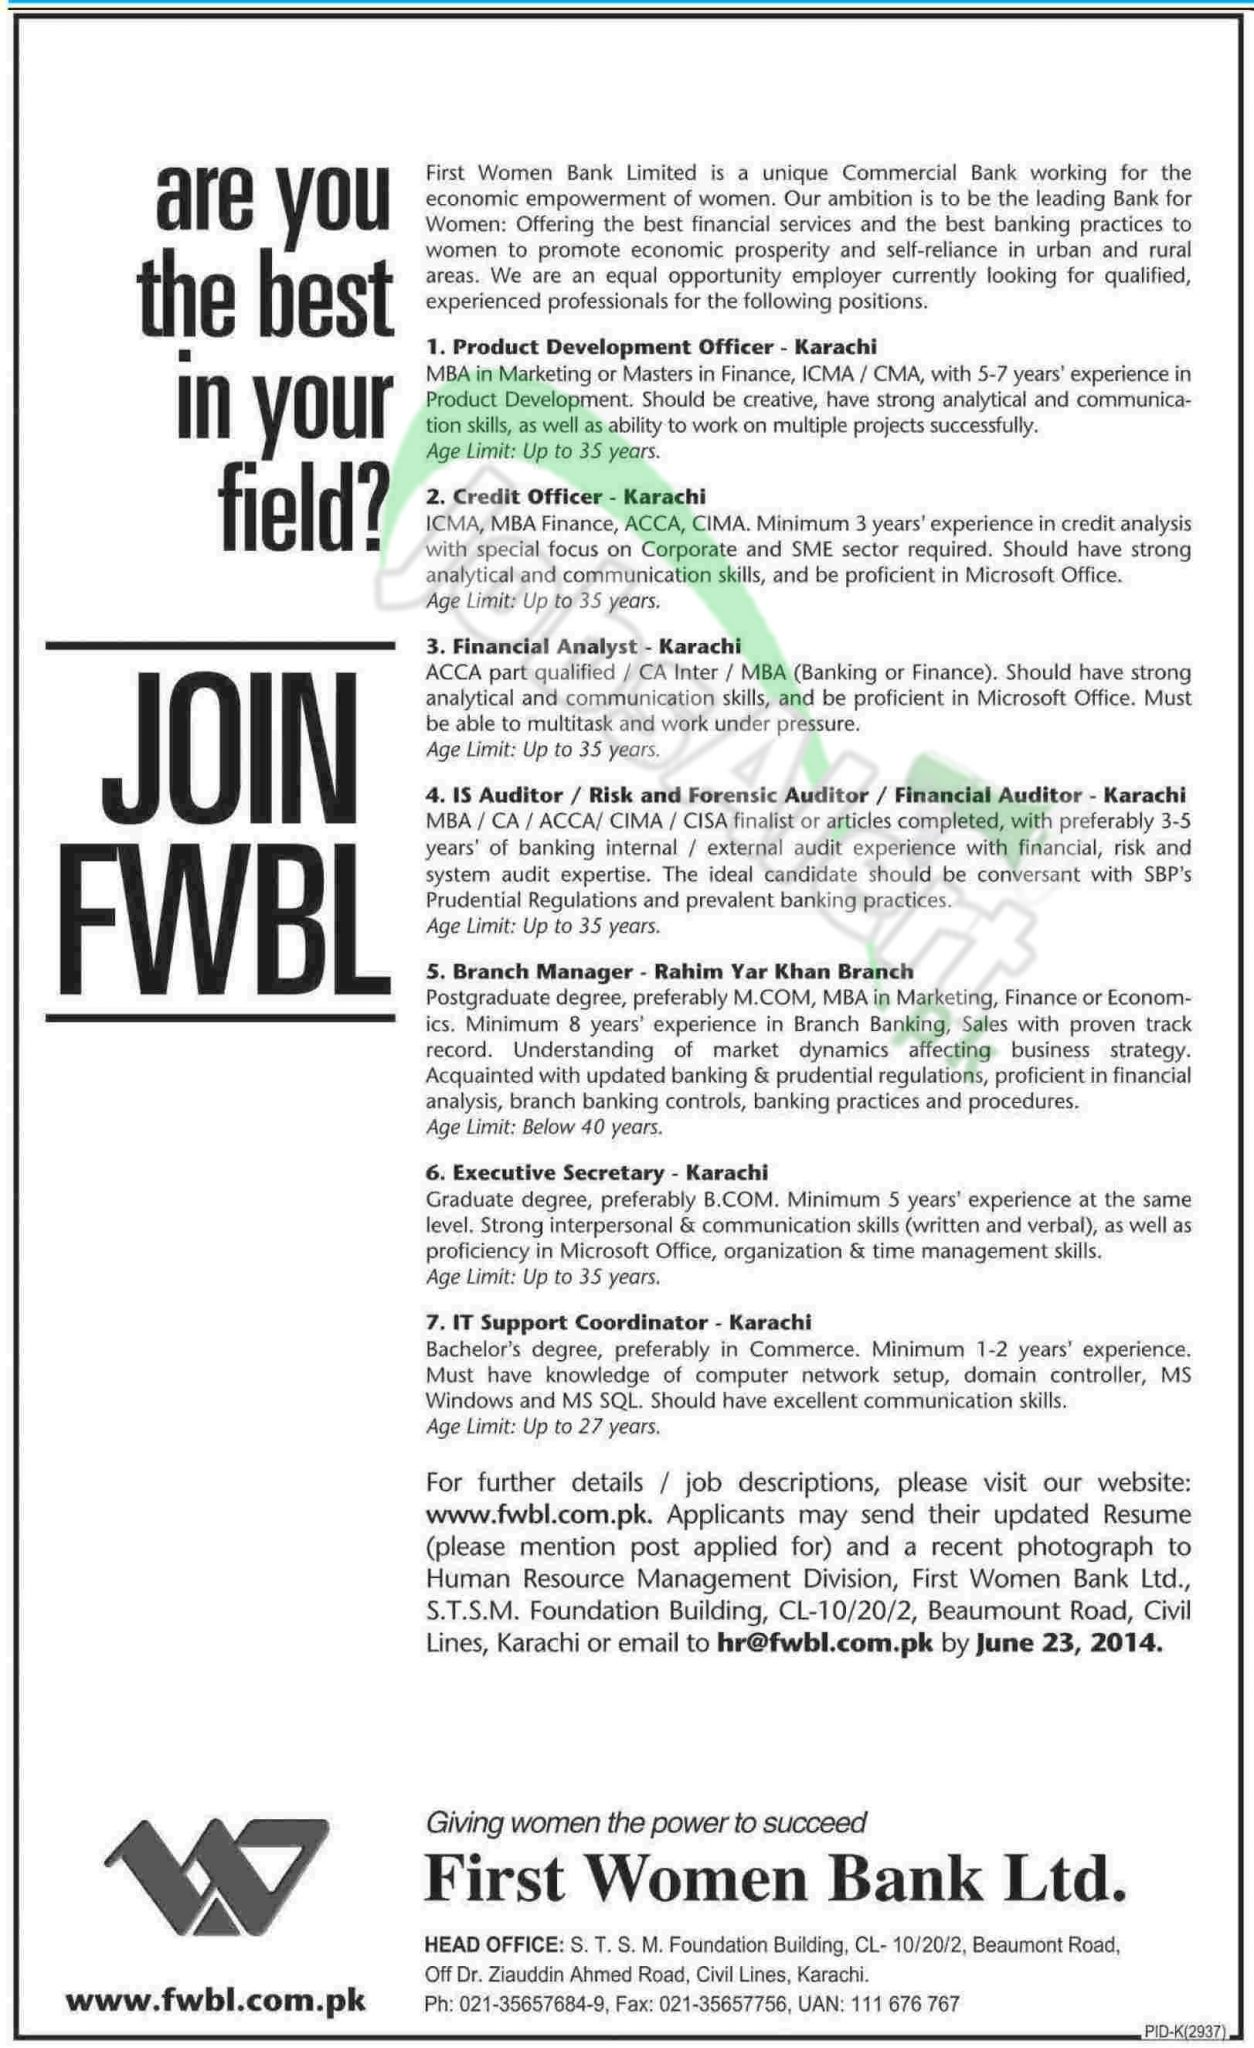 First Women Bank Limited